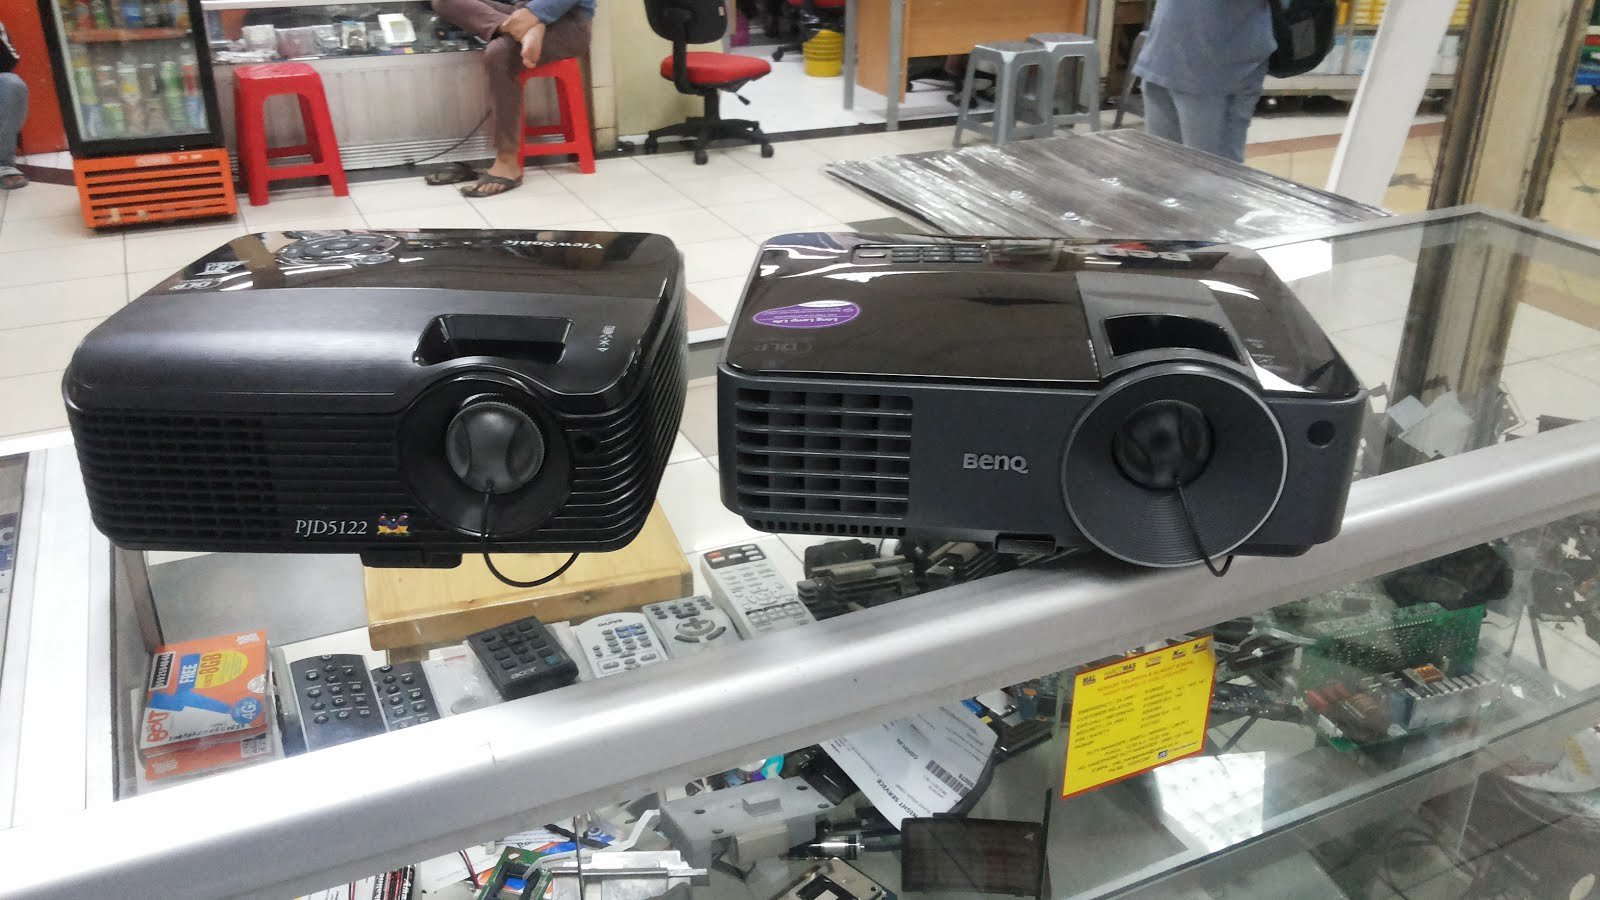 Jual Beli Projector Second